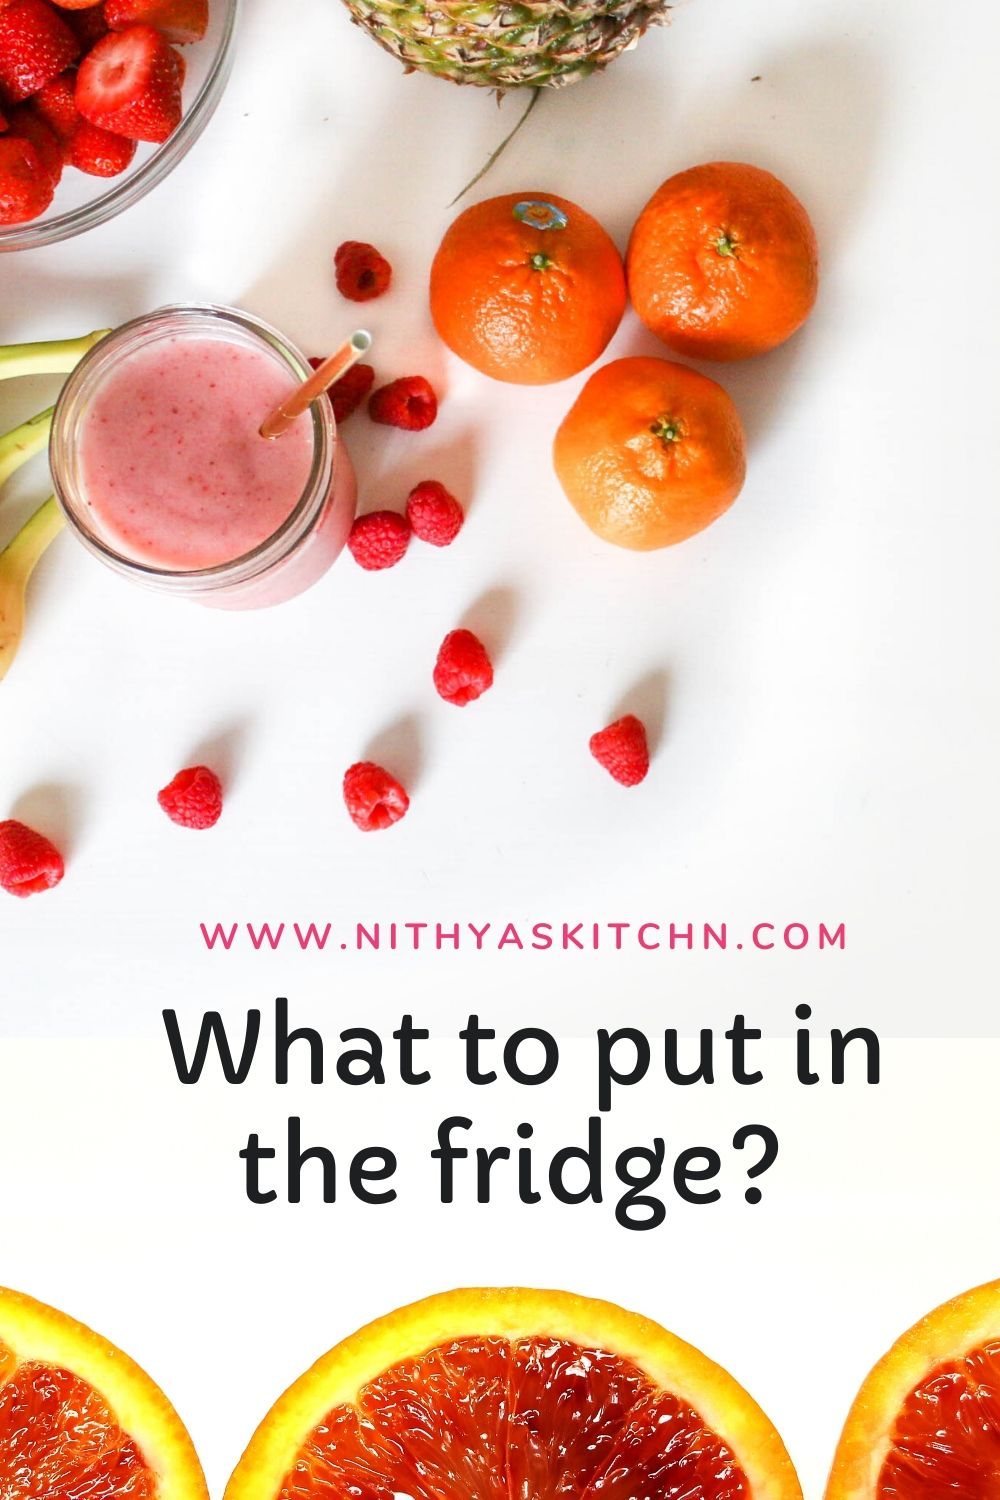 What to put in the fridge?